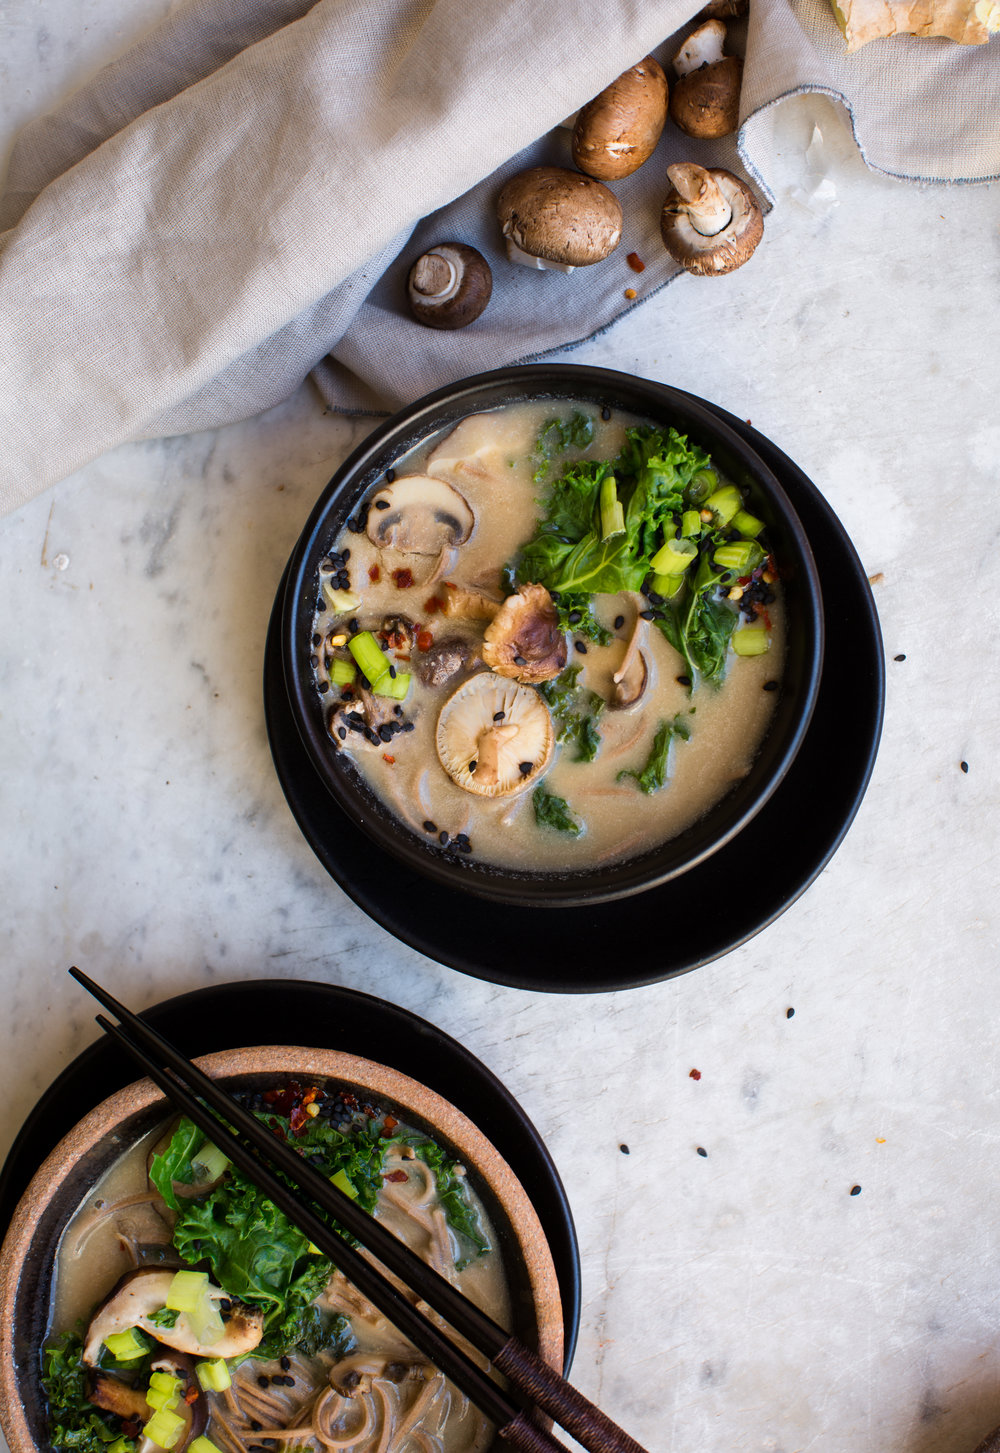 5-Vegetable-Miso-Soup-with-Soba-Noodles | www.8thandlake.com.jpg